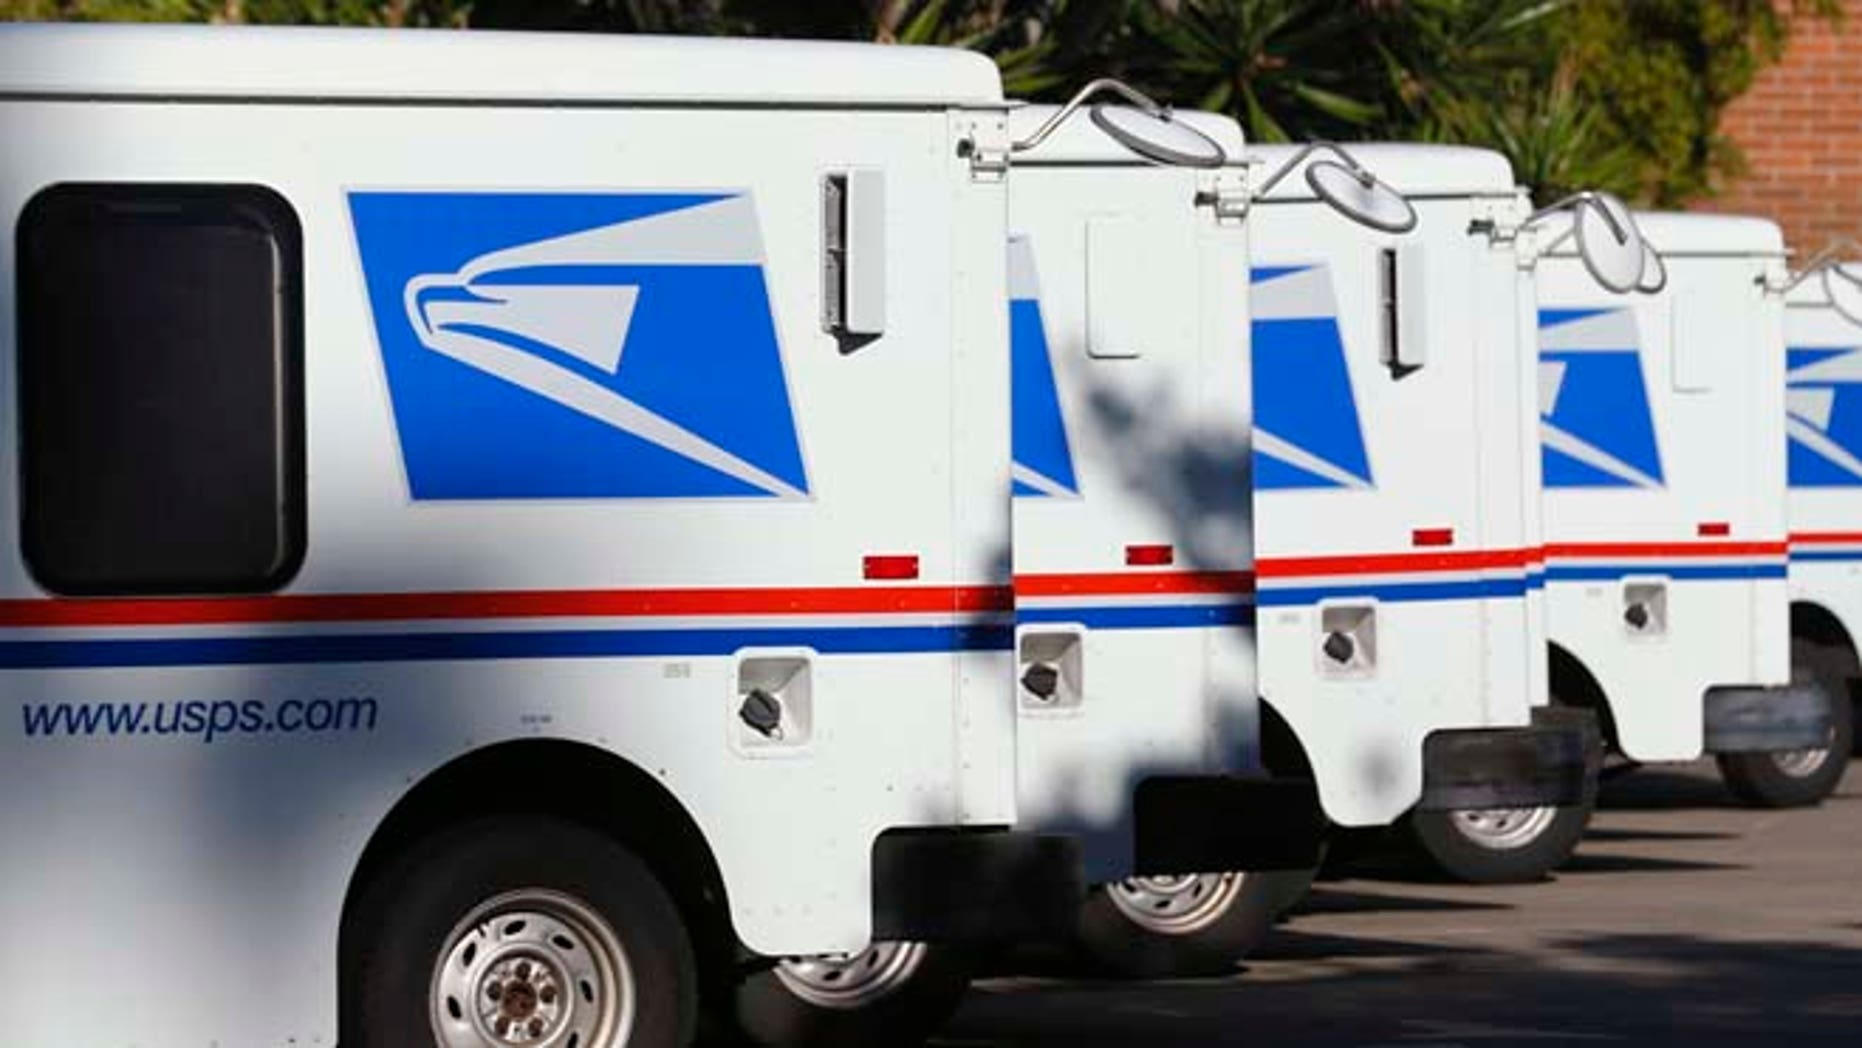 In this Nov. 13, 2013 file photo U.S. postal service trucks sit parked at the post office in Del Mar, California.